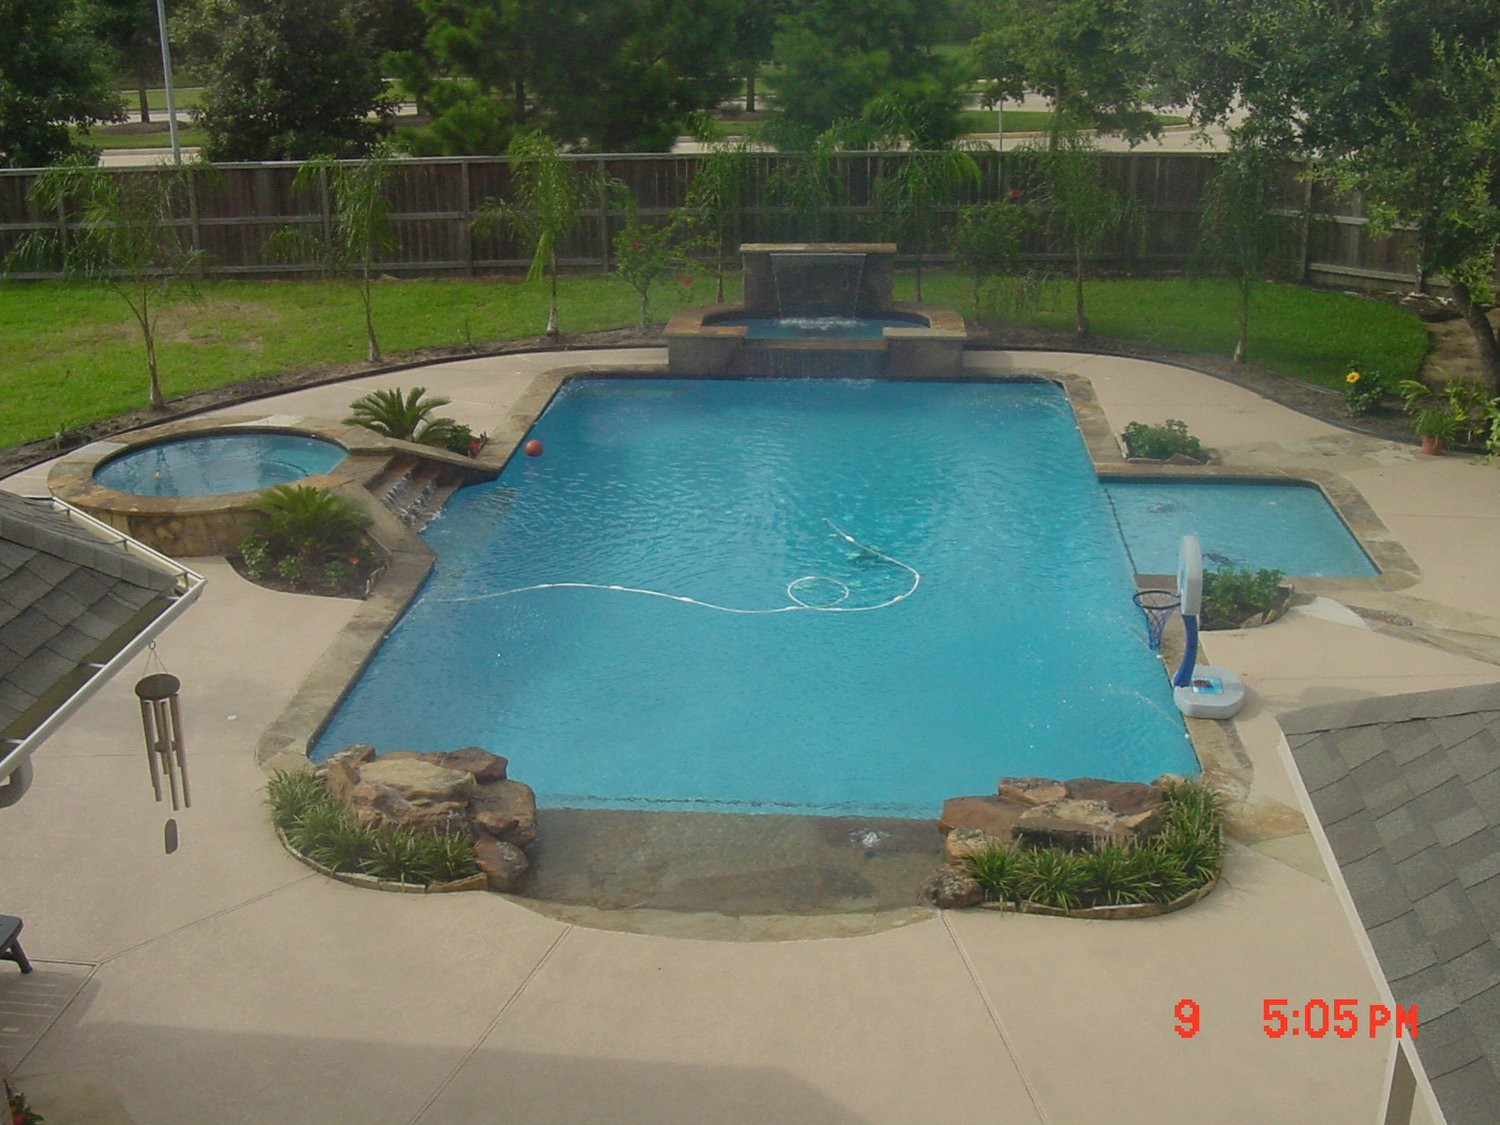 Pool designs cypress spring tomball katy kingwood for Pool design katy